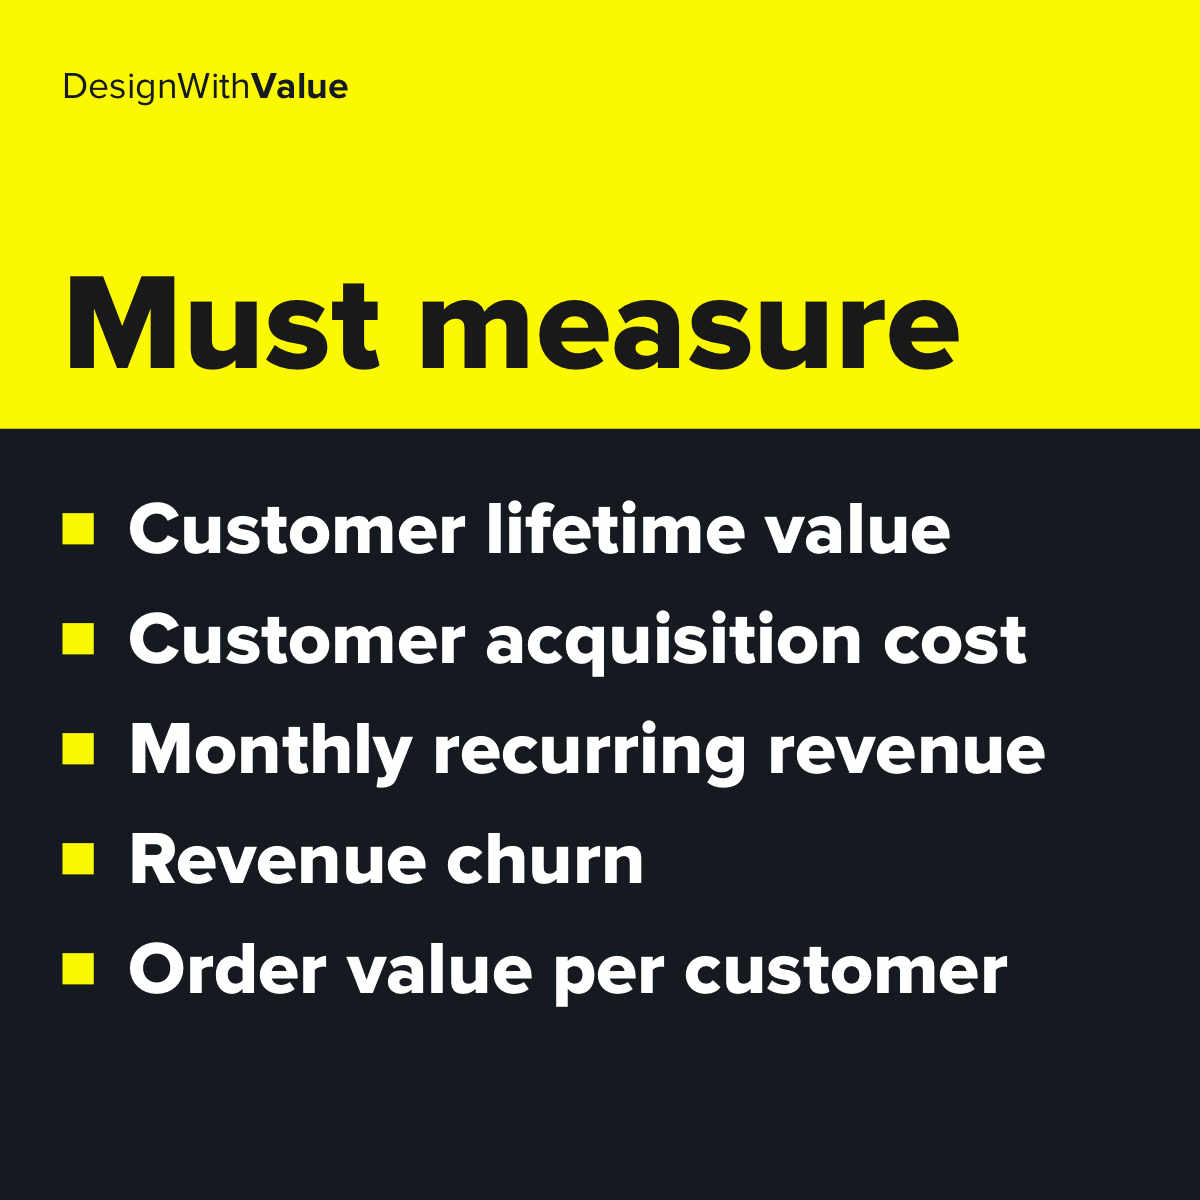 List of metrics: Customer lifetime value, customer acquisition cost, monthly recurring revenue, revenue churn, order value per customer.